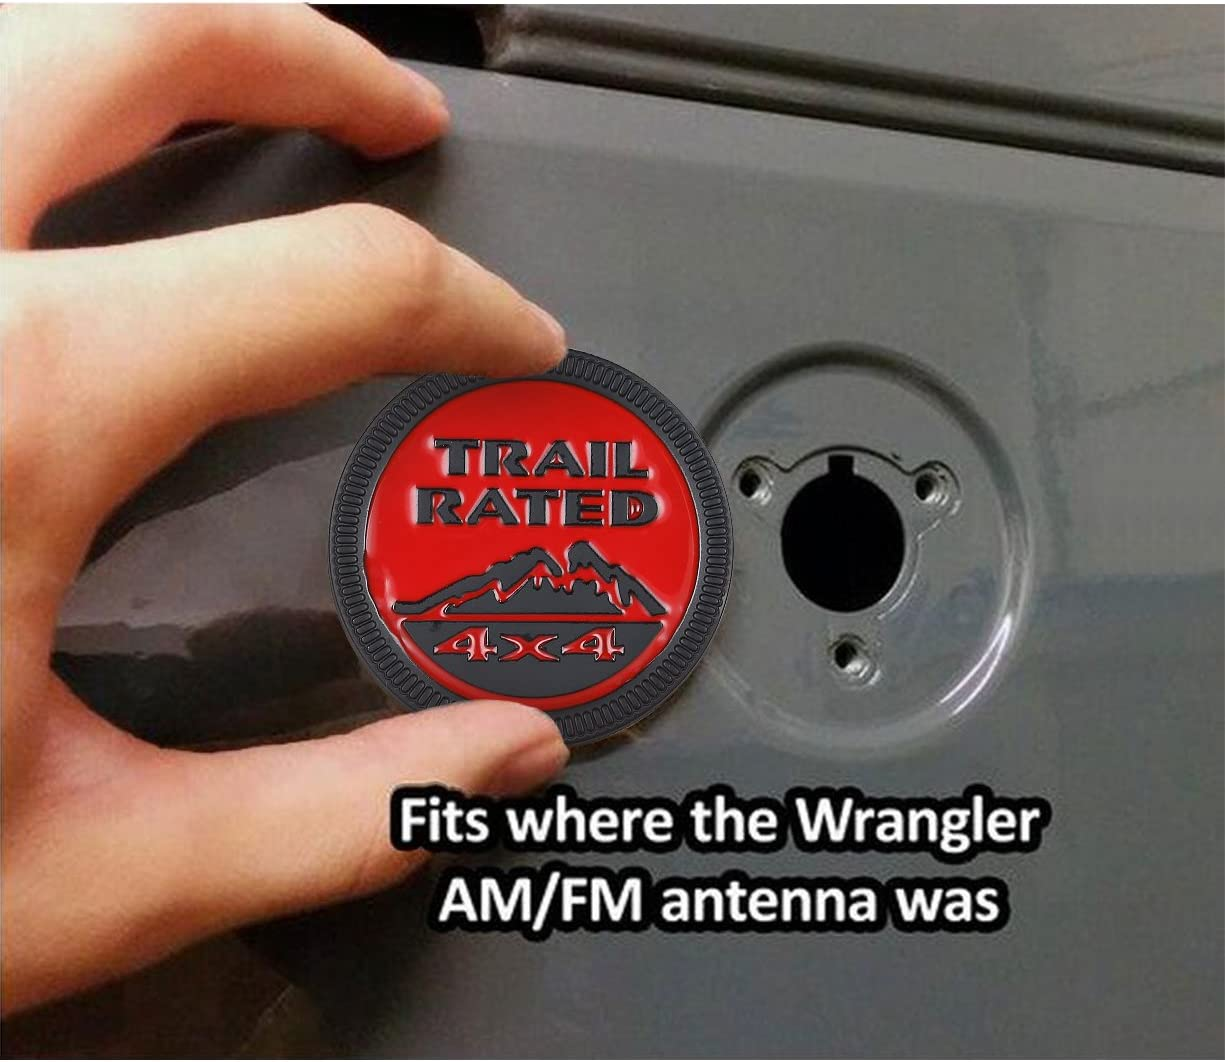 Jeep Wrangler Trail Rated 4x4 Metal Emblem Badge Sticker for Jeep Wrangler Cherokee Liberty